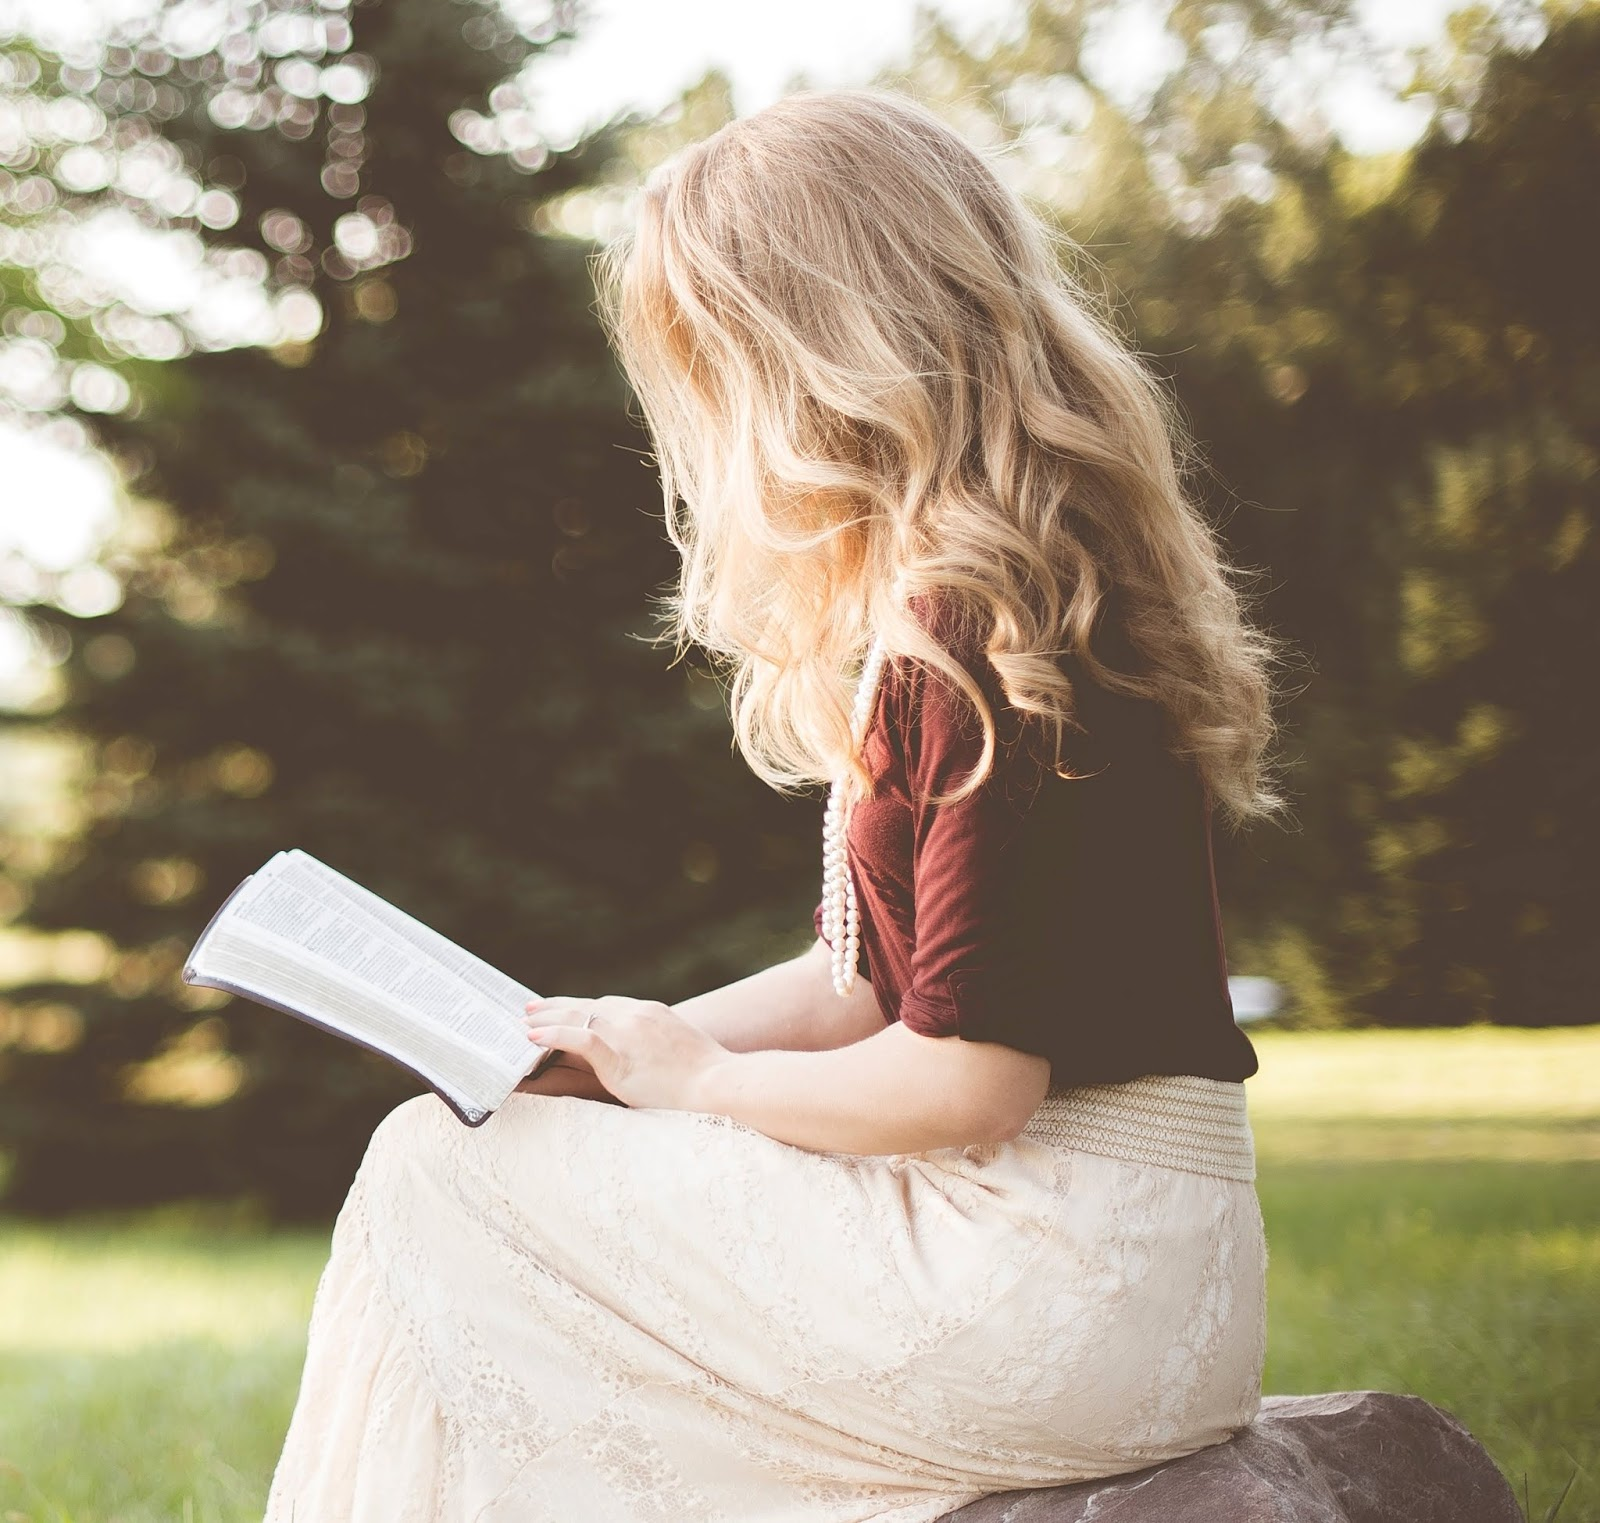 A blond woman sitting on a rock in a park, facing left, reading an book that's on her lap, with trees in the background